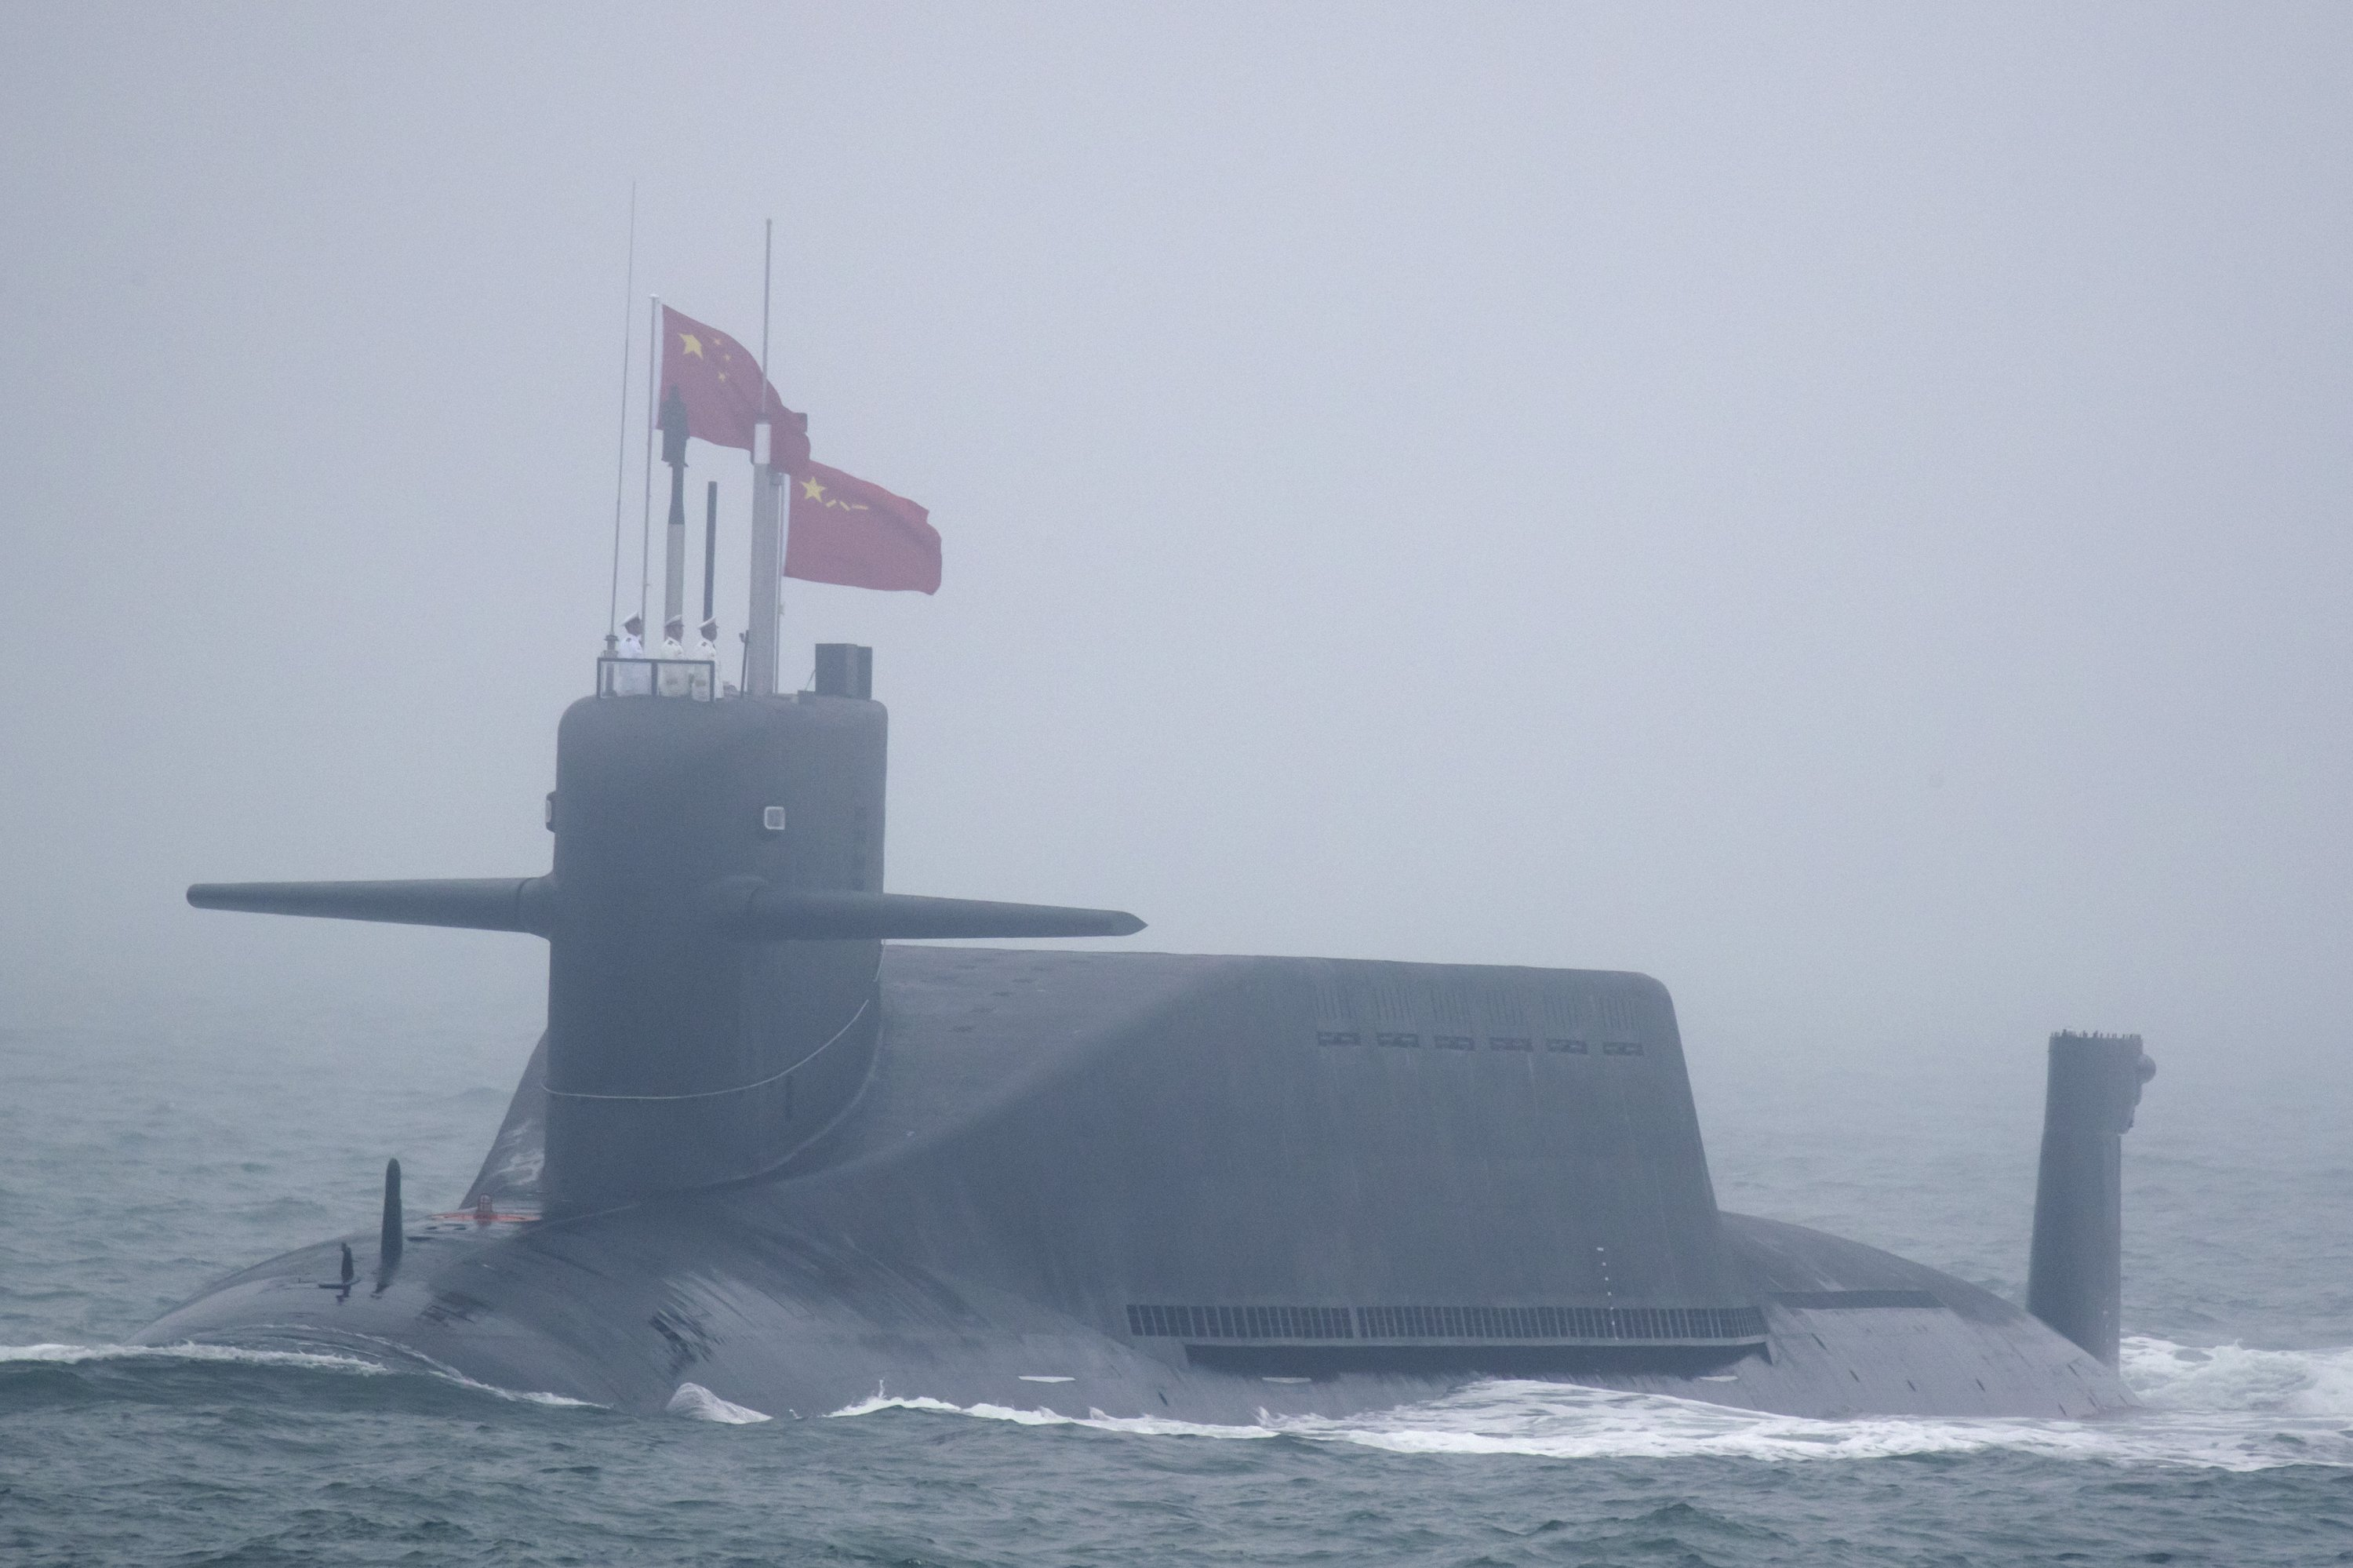 A type 094A Jin-class nuclear submarine of the Chinese navy participates in a naval parade in the sea near Qingdao, Shandong province, eastern China, April 23, 2019. (AP Photo)